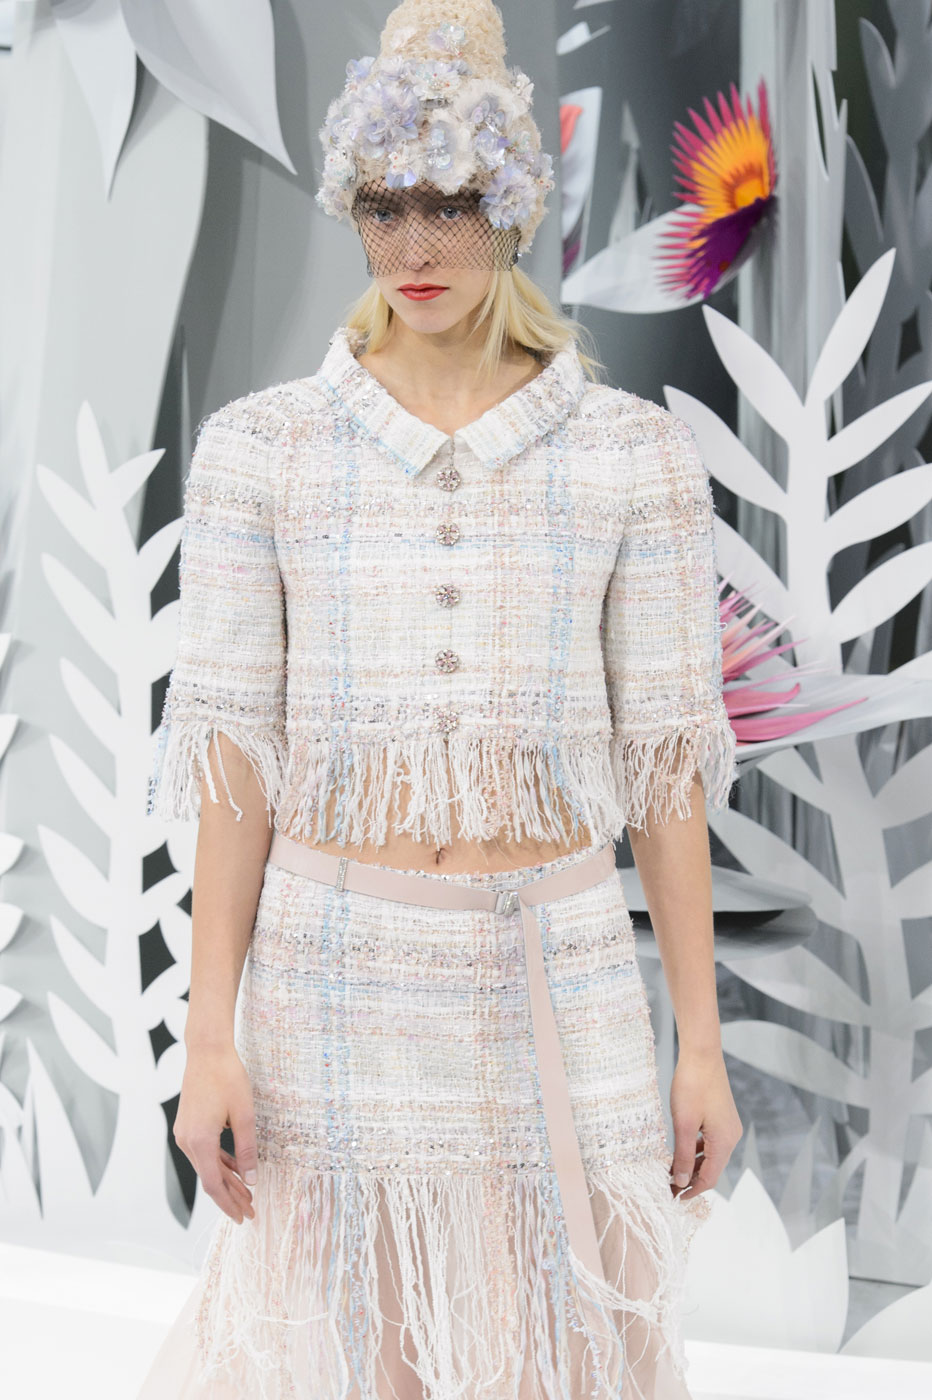 Chanel-fashion-runway-show-haute-couture-paris-spring-summer-2015-the-impression-059